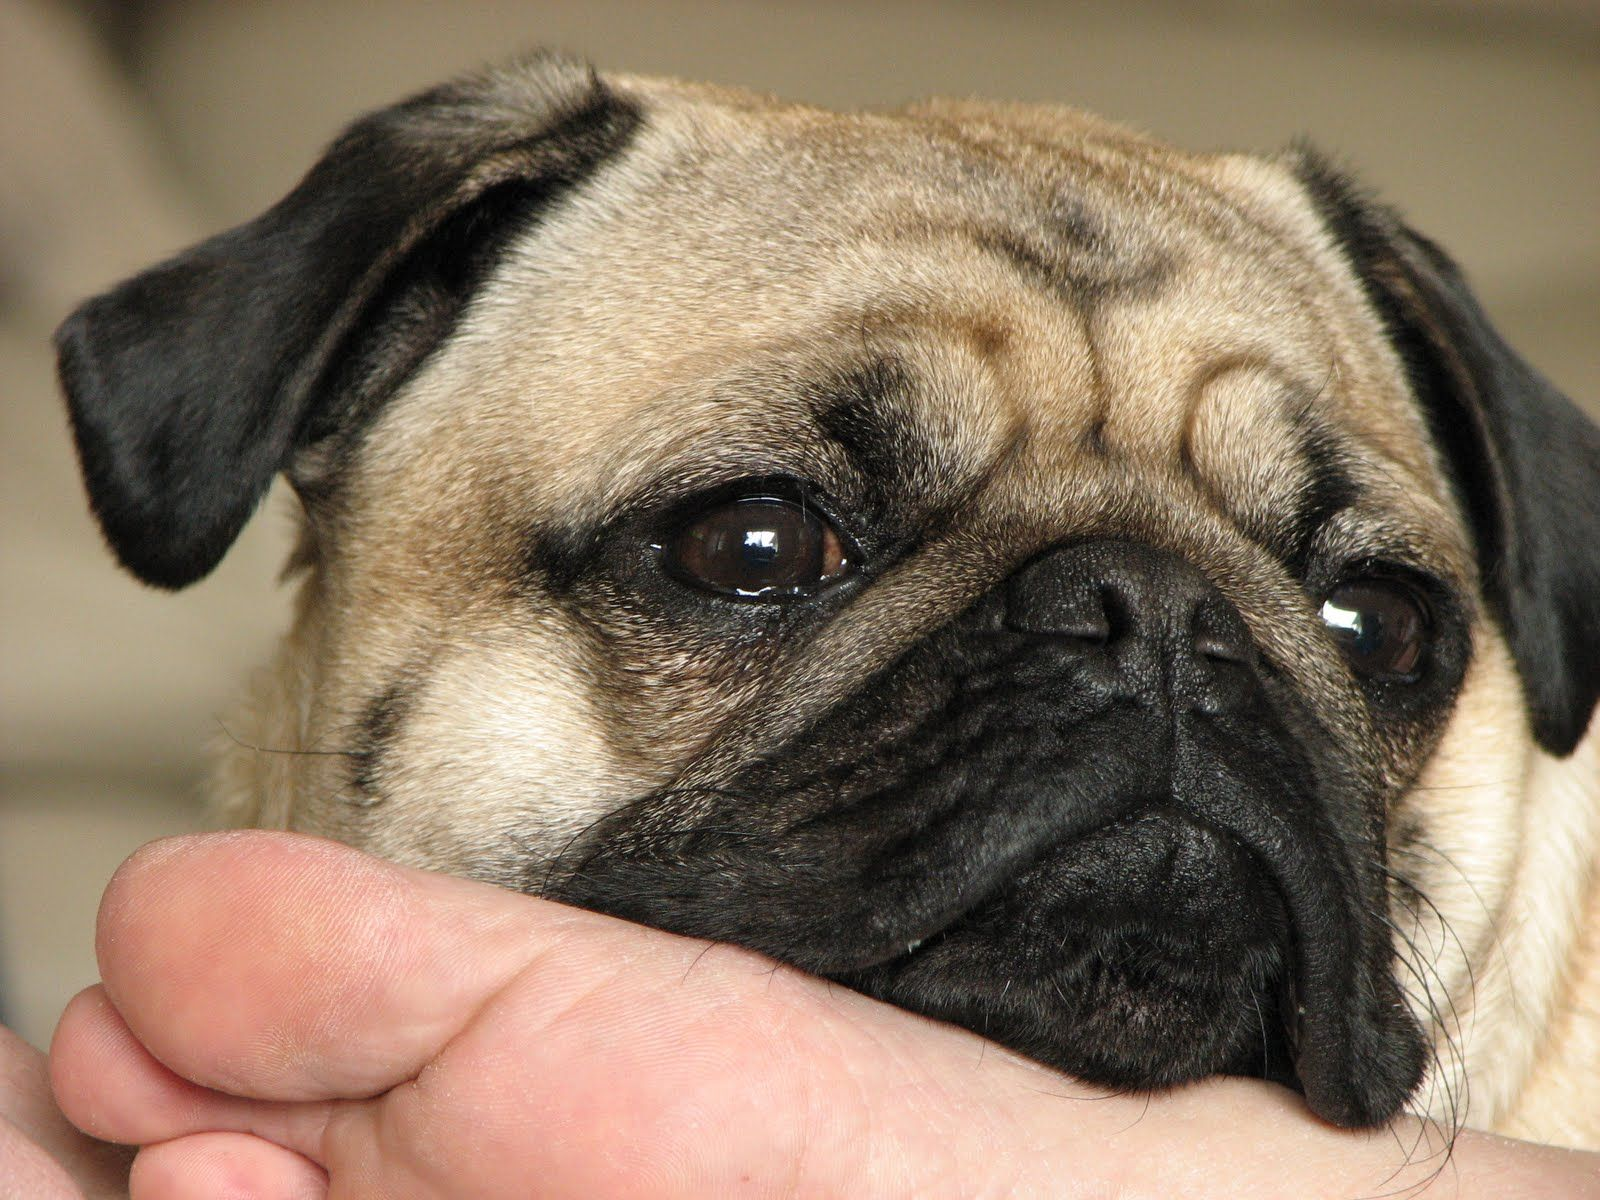 A Pug Is A Toy Dog Breed With A Wrinkly Face And Medium Small Body